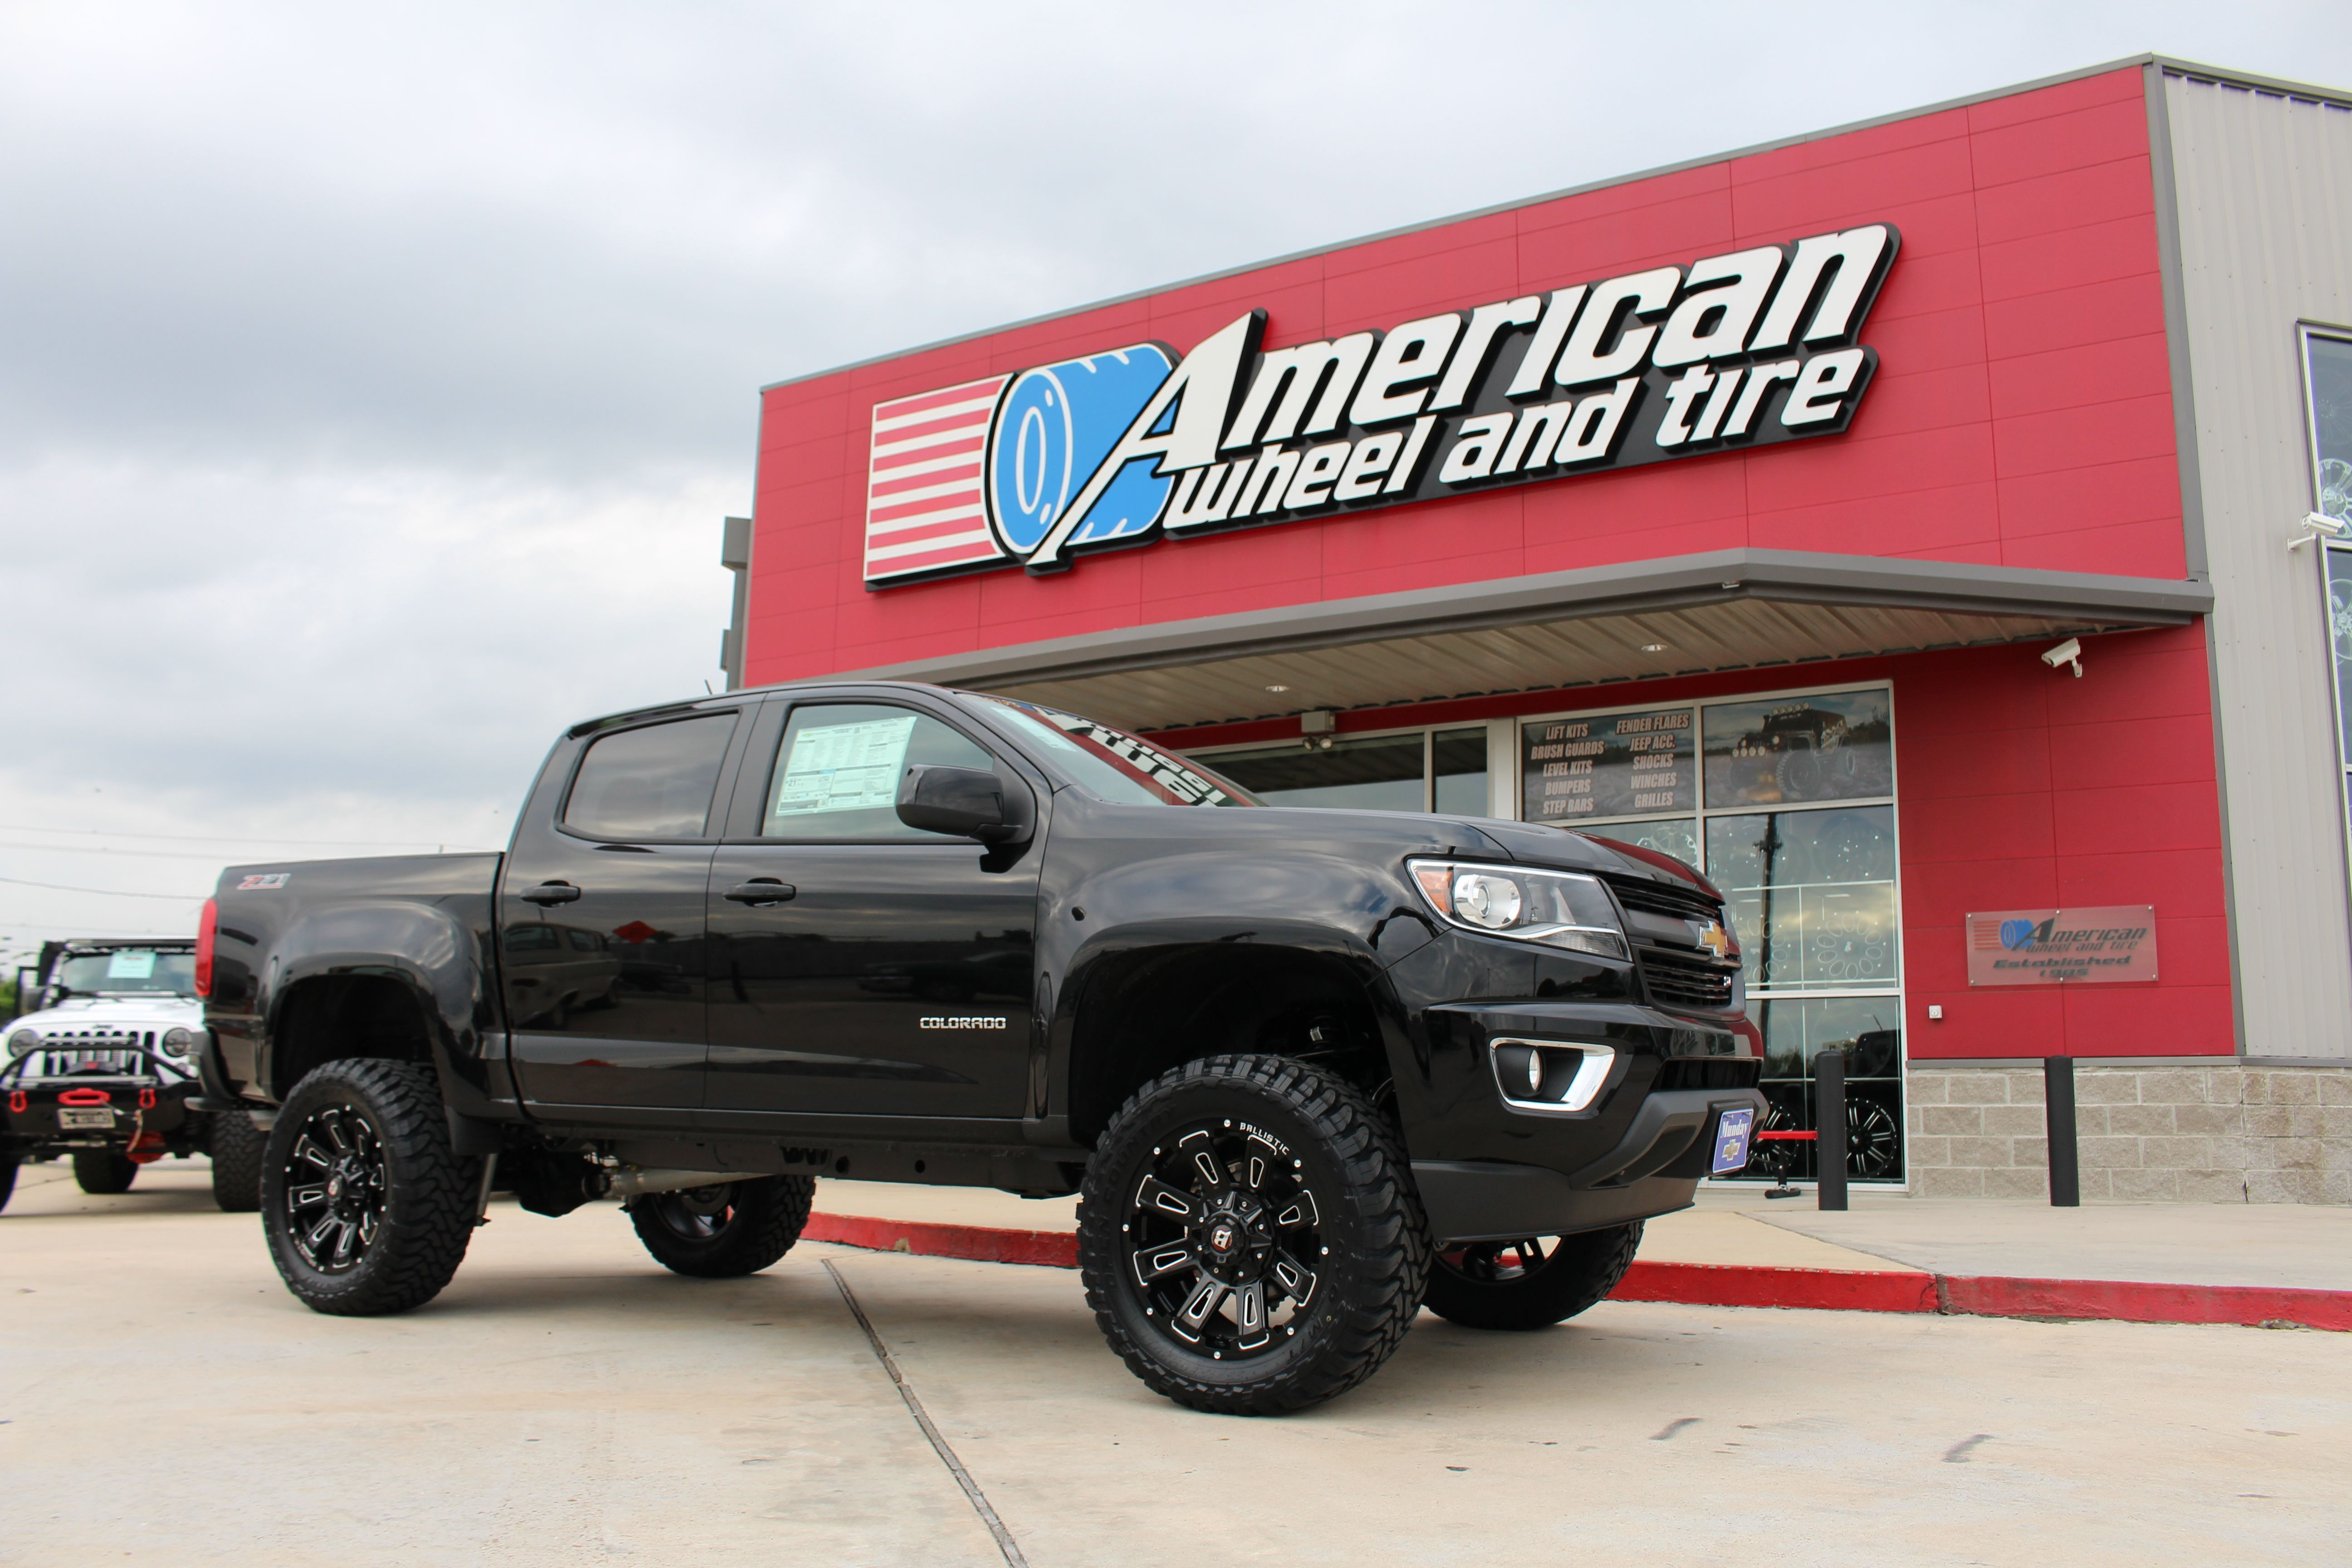 Pin By Deeannagail On Truck Mods Chevy Colorado Chevy Colorado Lifted Chevrolet Colorado